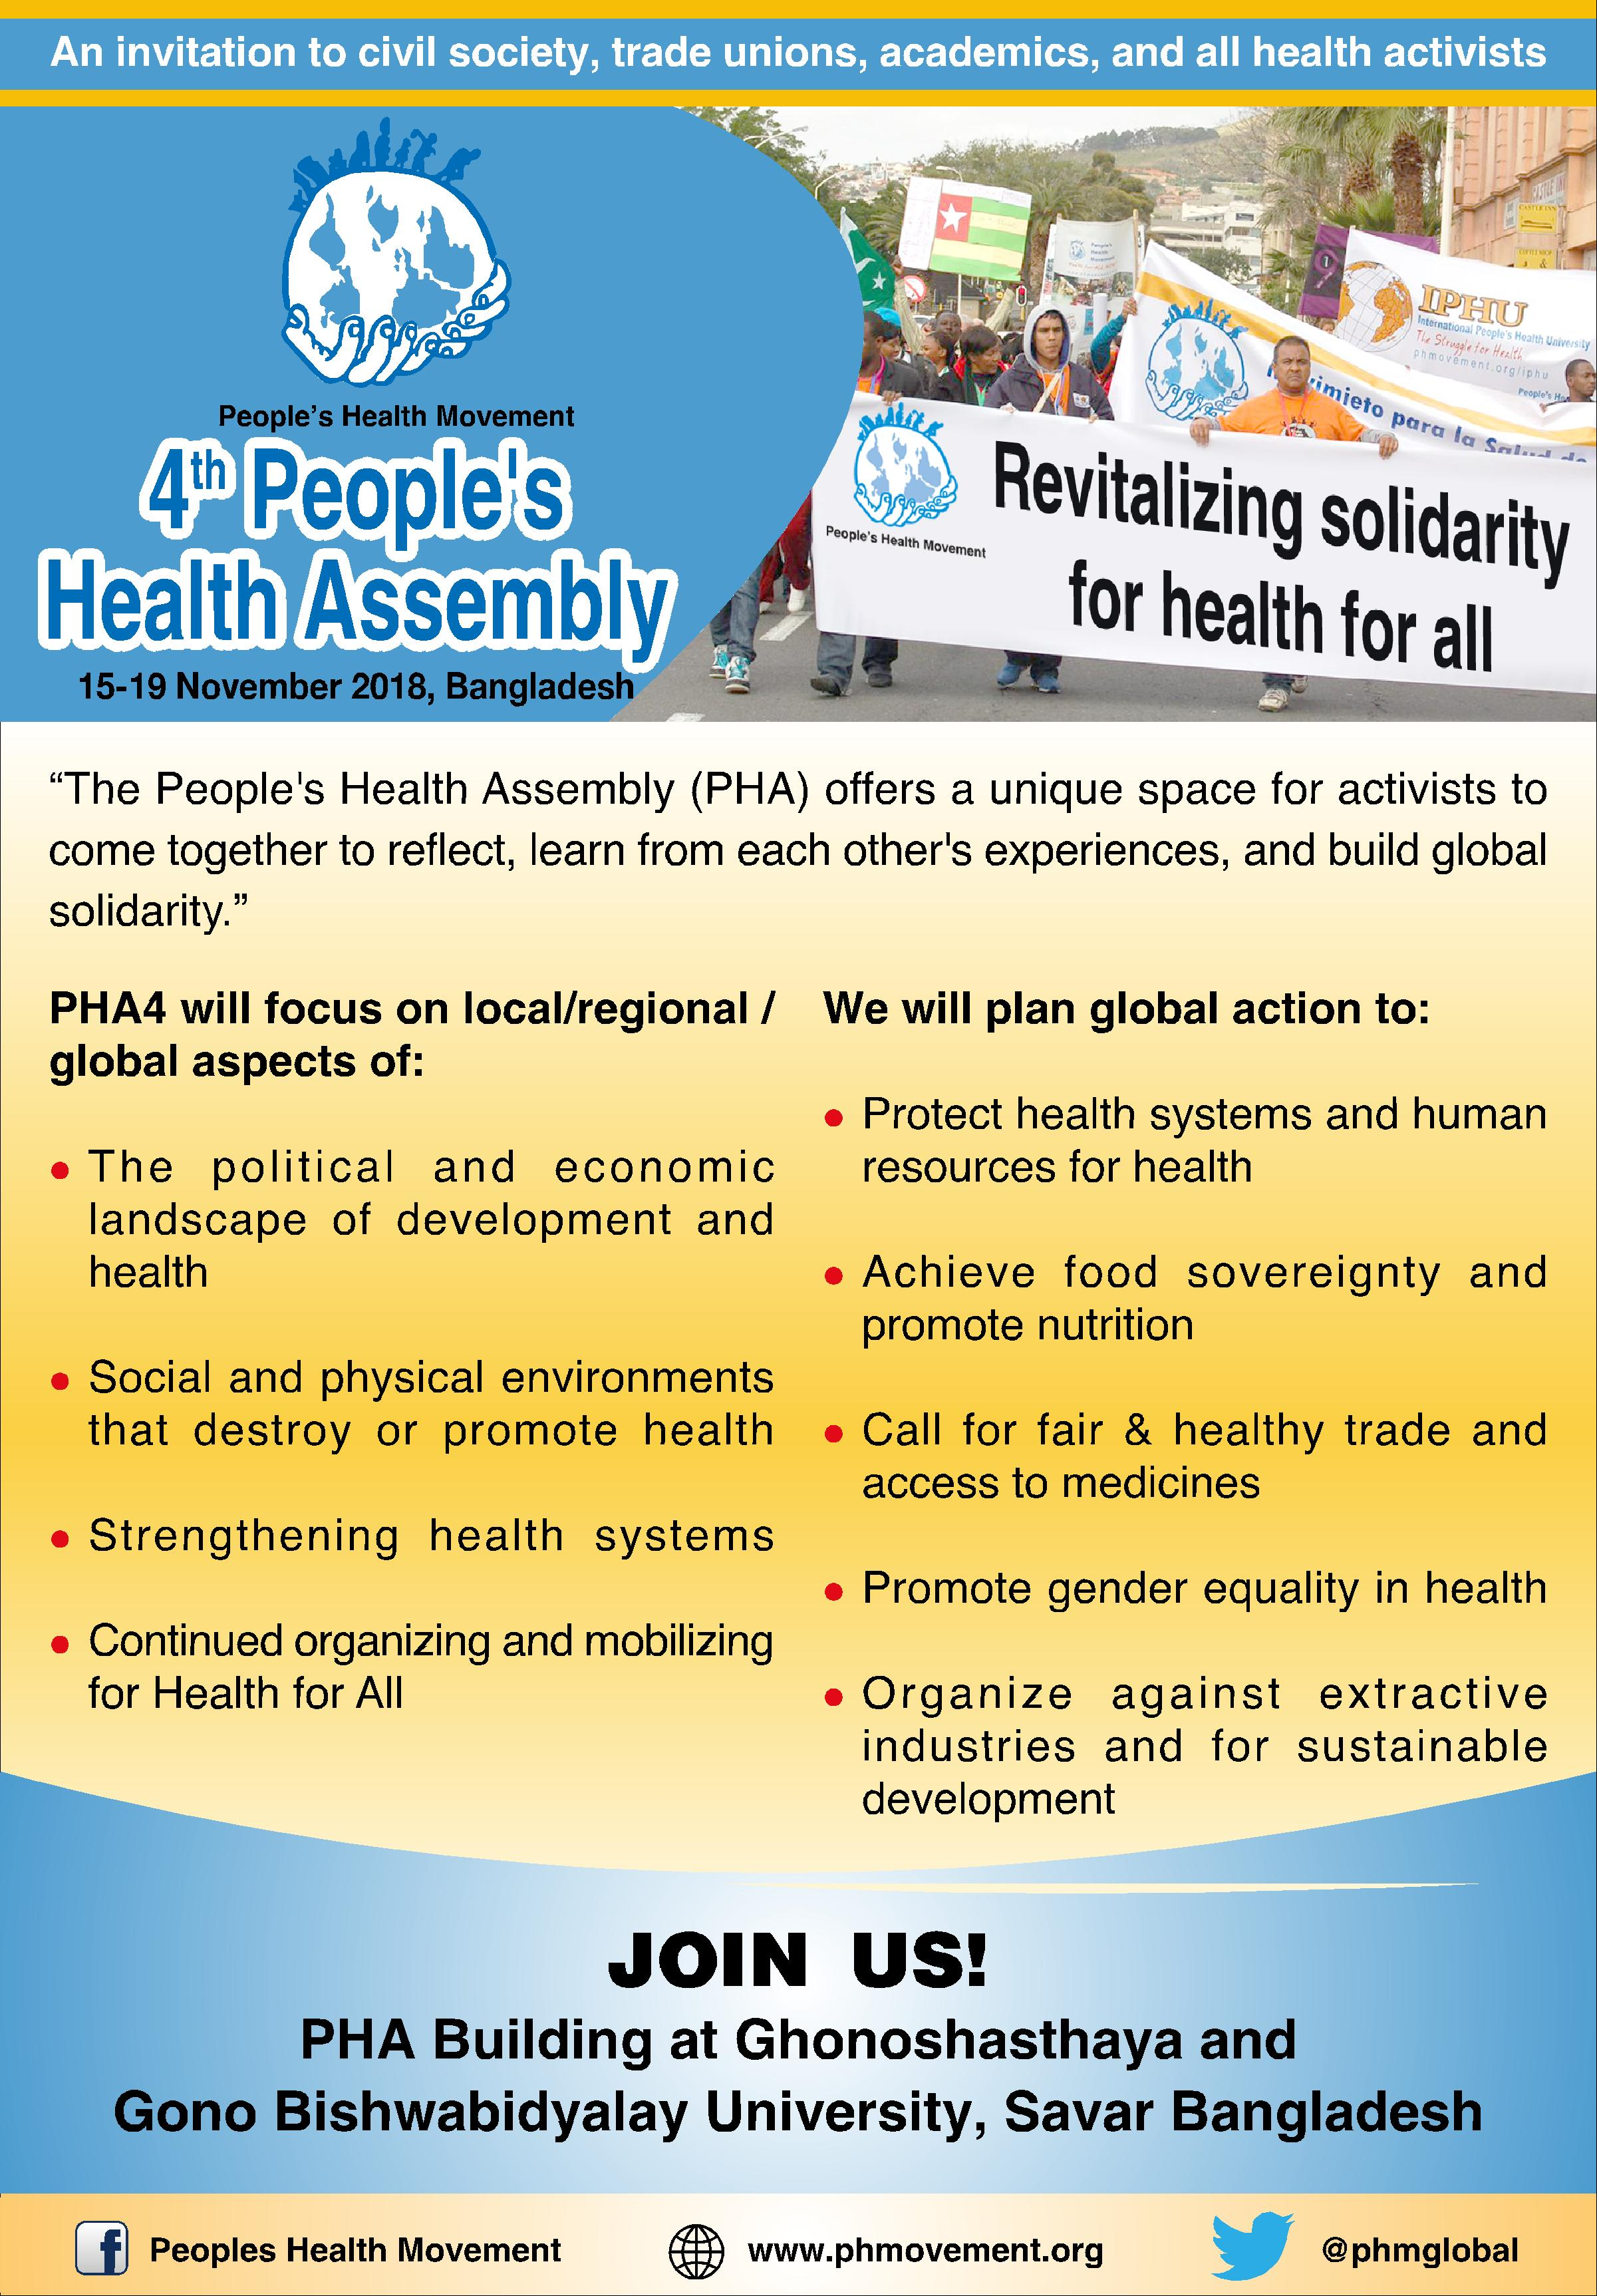 Let's Mobilise for PHA4! - People's Health Movement